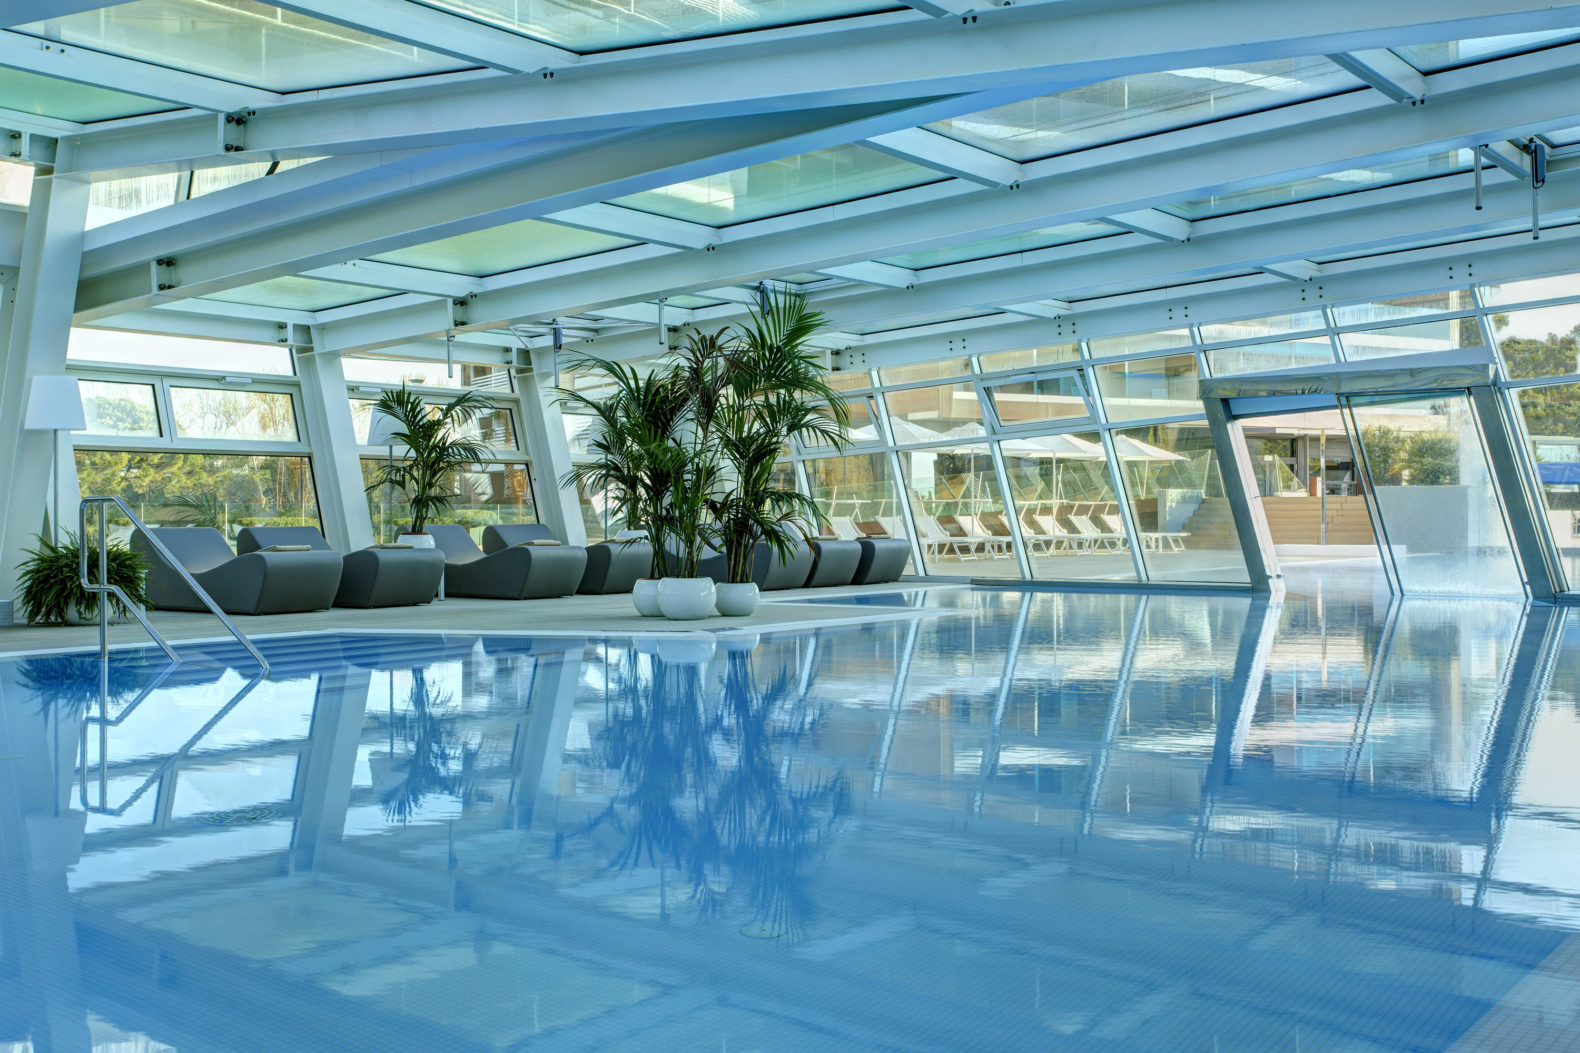 outdoor-heated-pool-swimmin-activities-almar-jesolo-hotel-italy